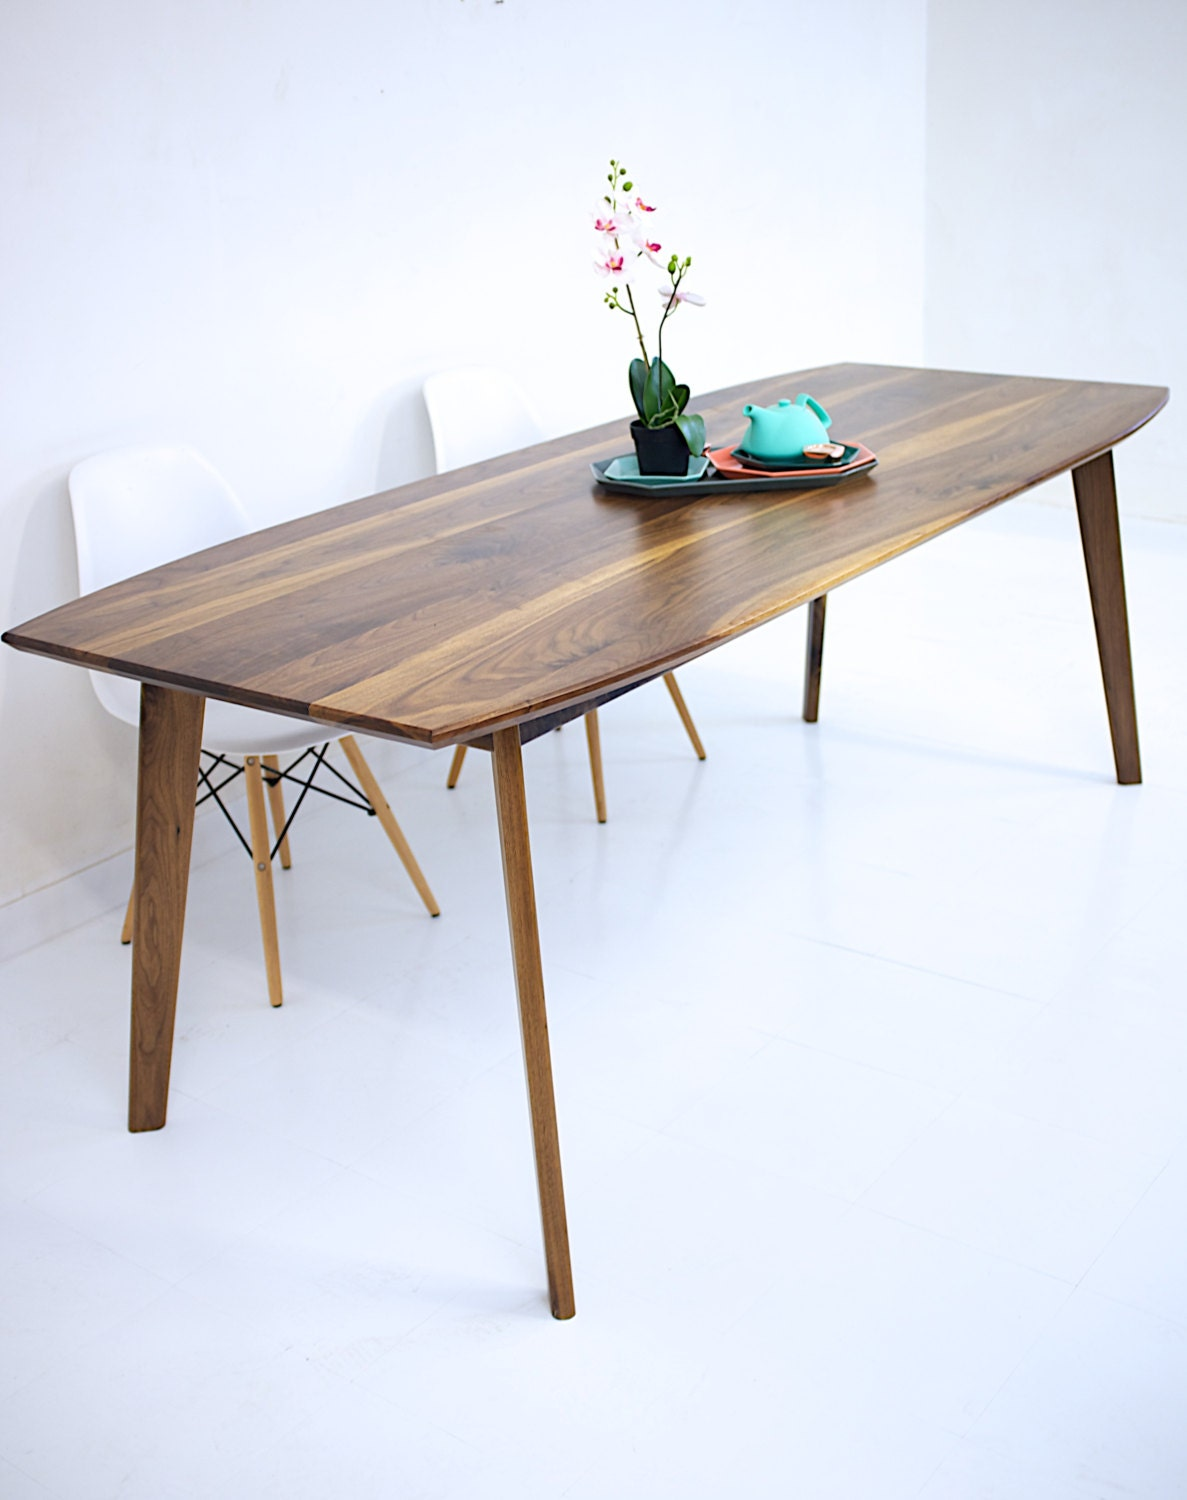 Dining table walnut dining table modern walnut table wood for Modern wooden dining table designs